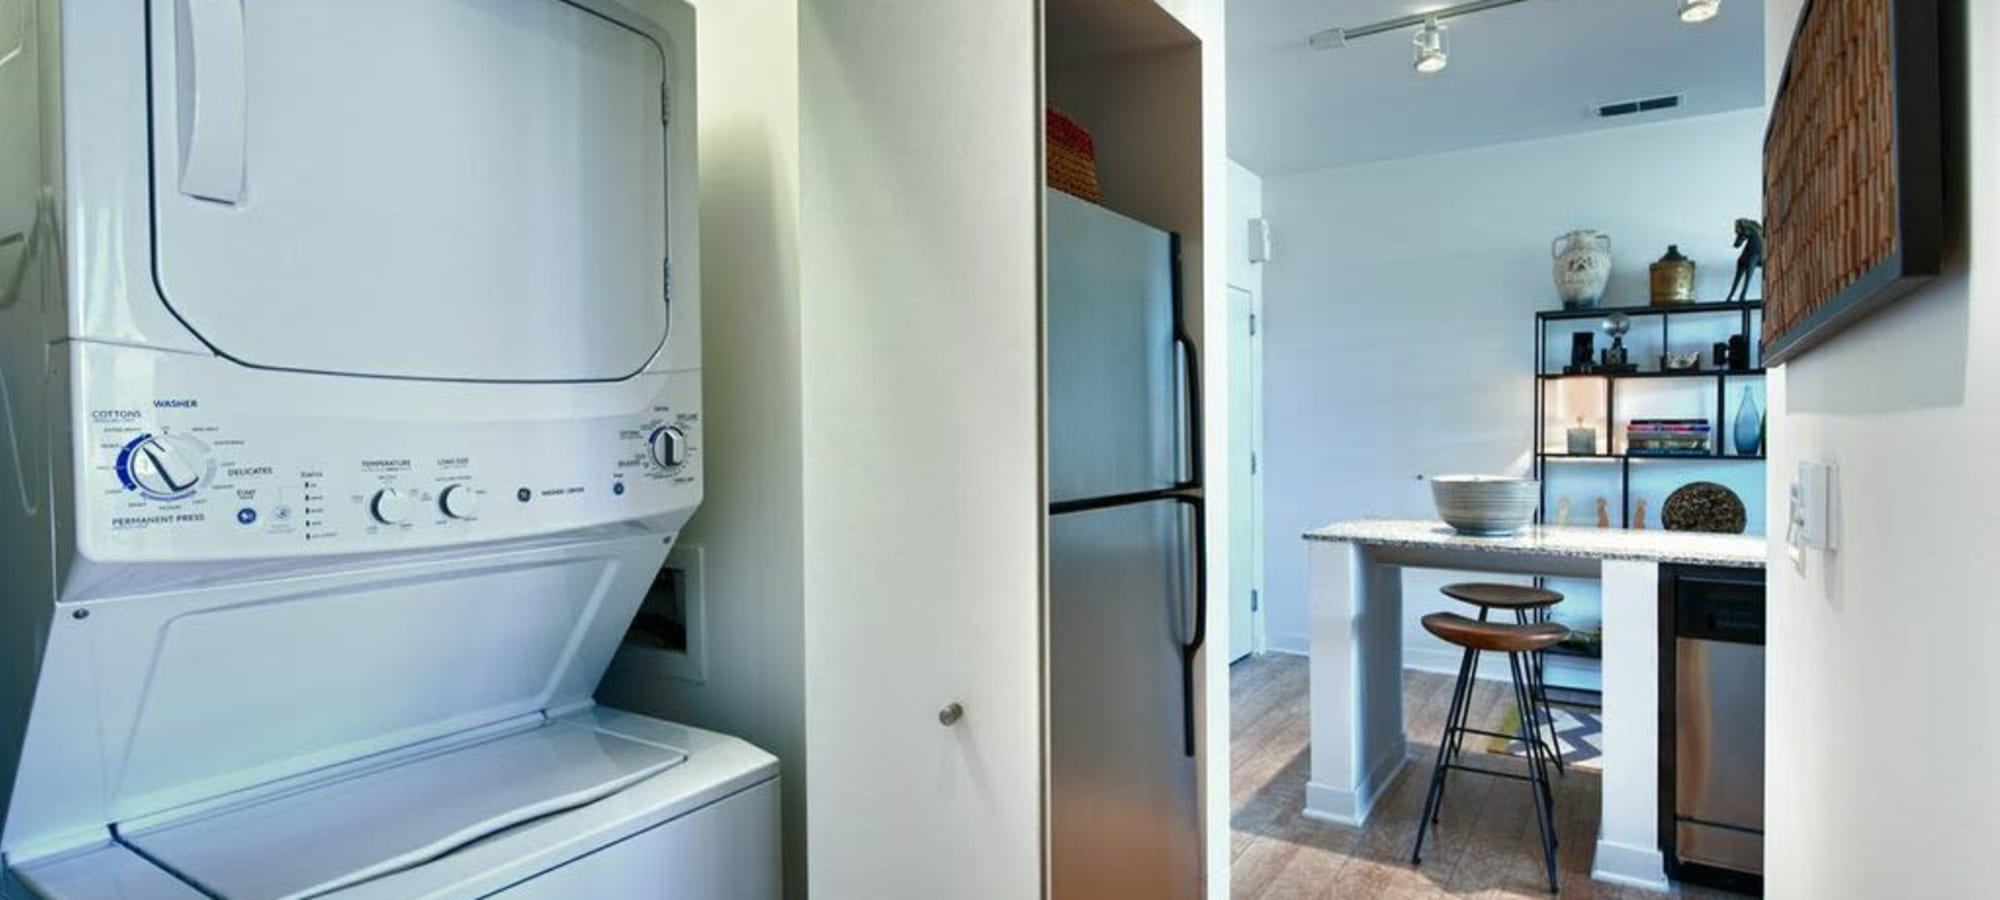 Luxury apartments with a washer/dryer in Phoenix, Arizona